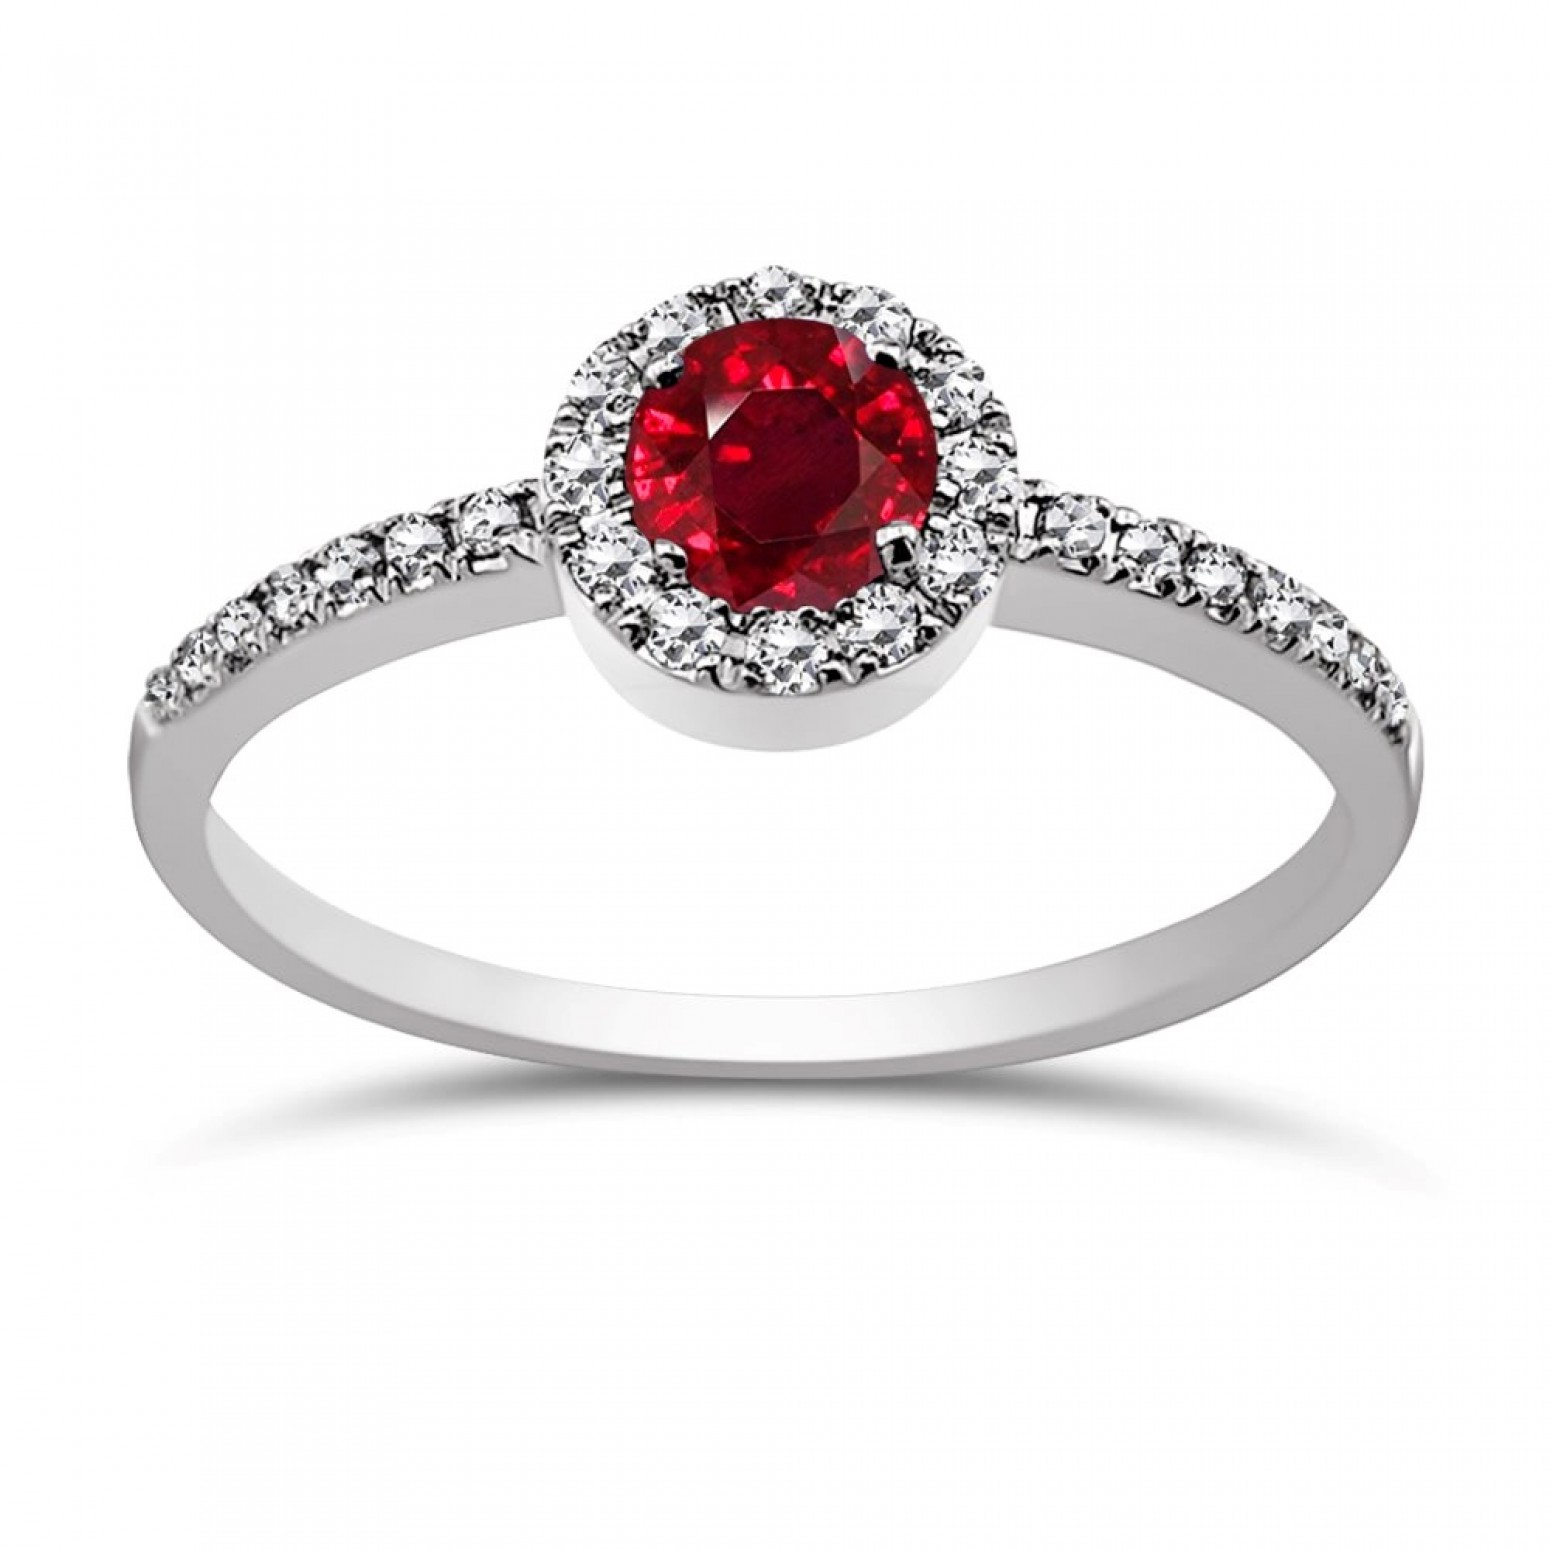 Solitaire ring 18K white gold with ruby 0.41ct and diamonds, VS1, G da3868 ENGAGEMENT RINGS Κοσμηματα - chrilia.gr